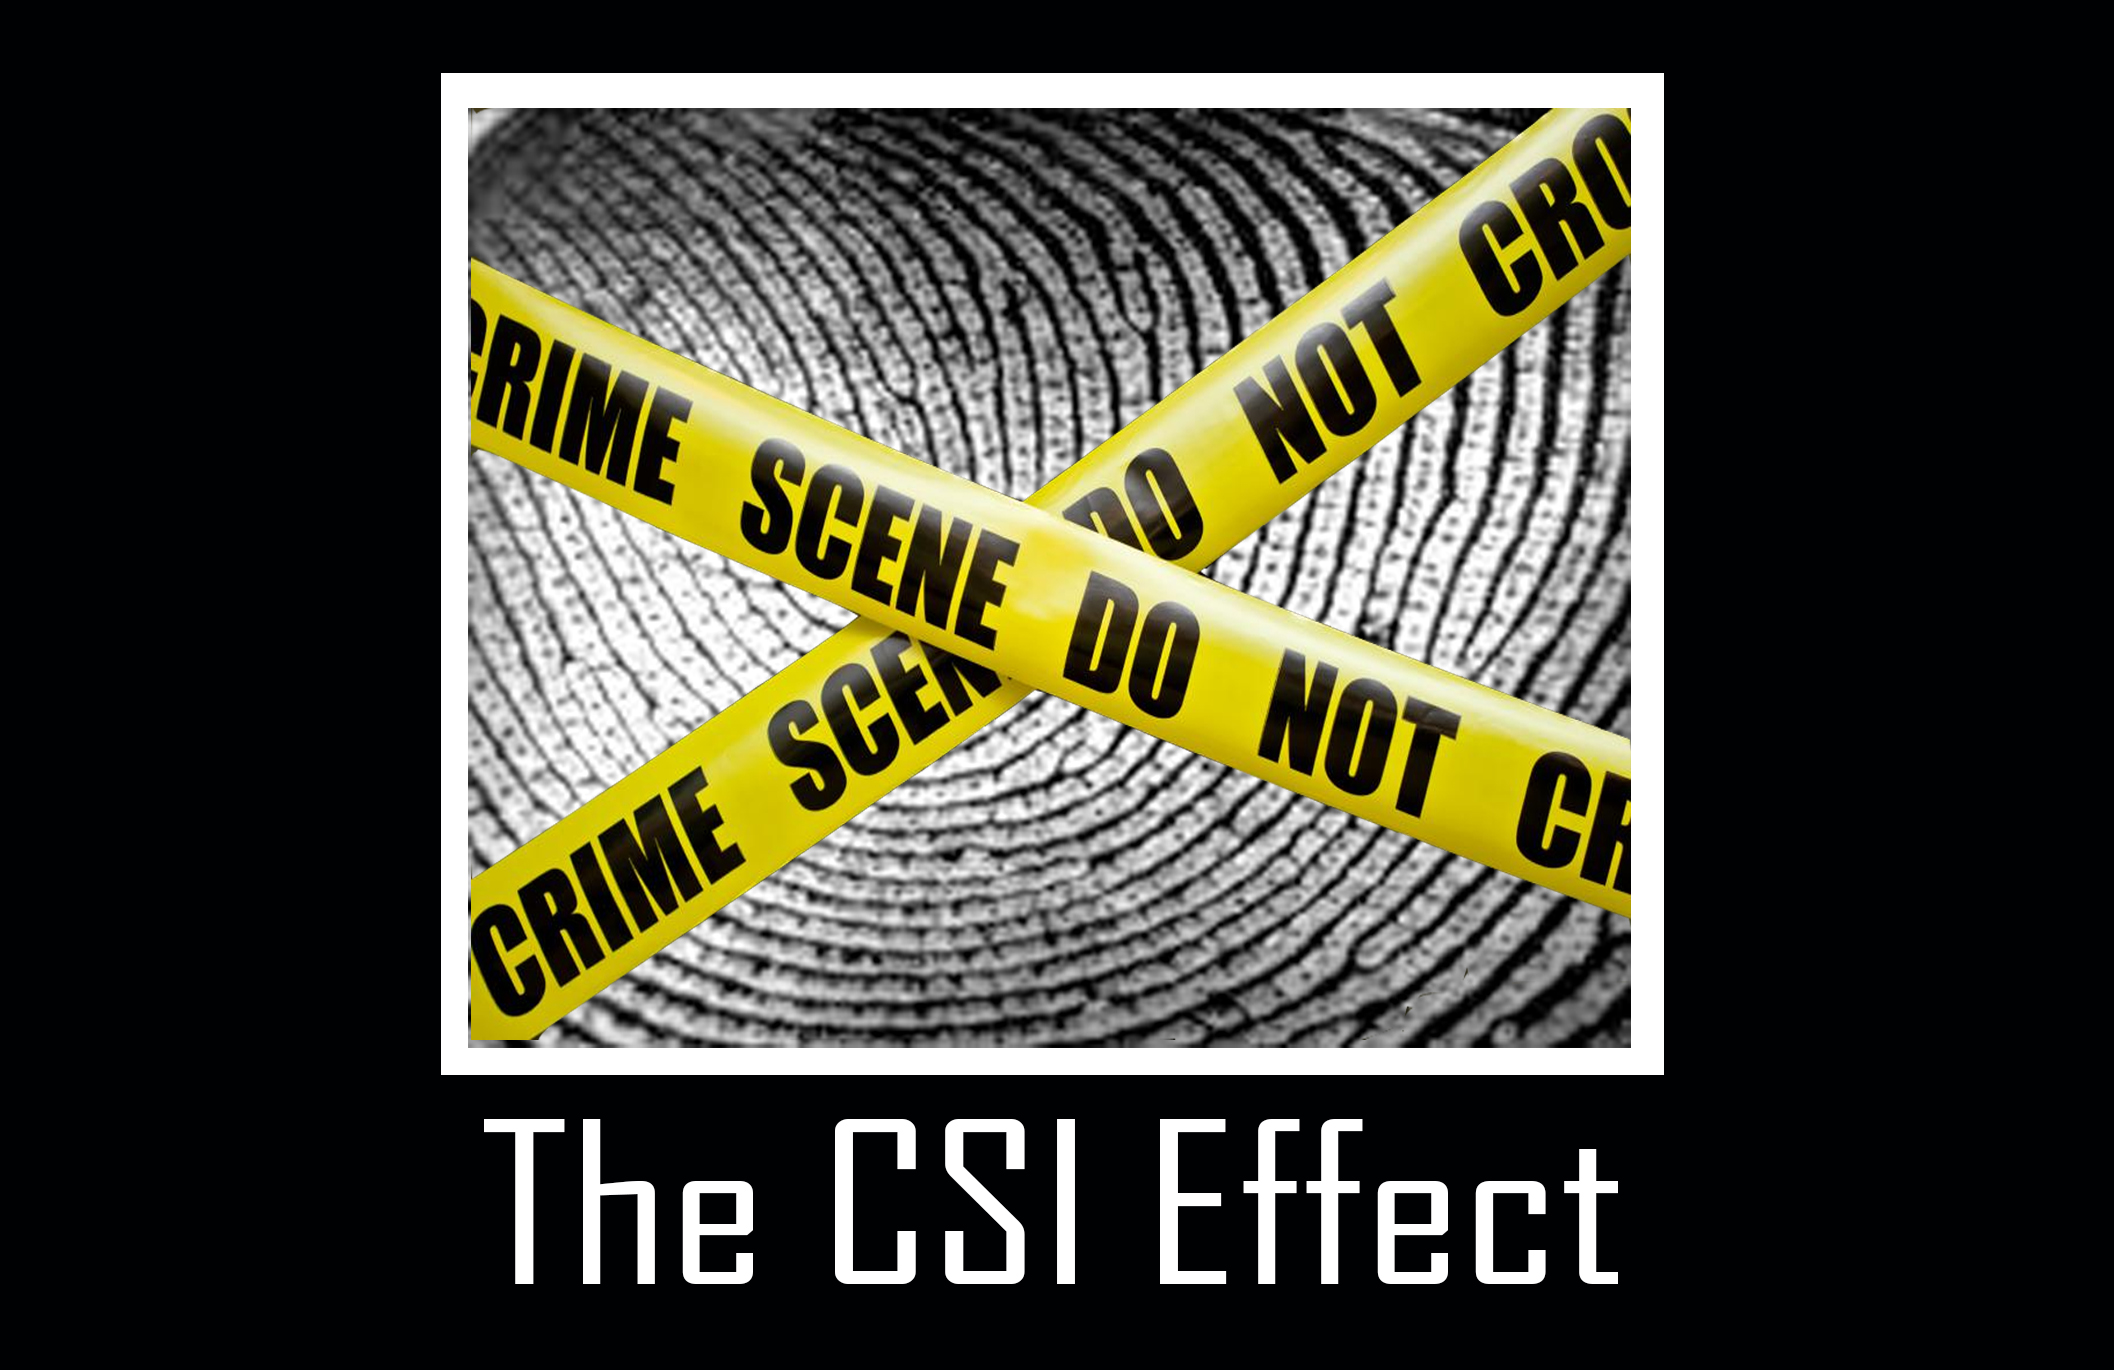 an examination of the csi effect and its influence on the prosecution and development of criminal ca To ensure appropriate support to our online marketing and product development departments in making data-driven decisions and achieving company goals, we are searching for a web analyst (f/m/x) possessing an urge to learn and a proactive mindset.